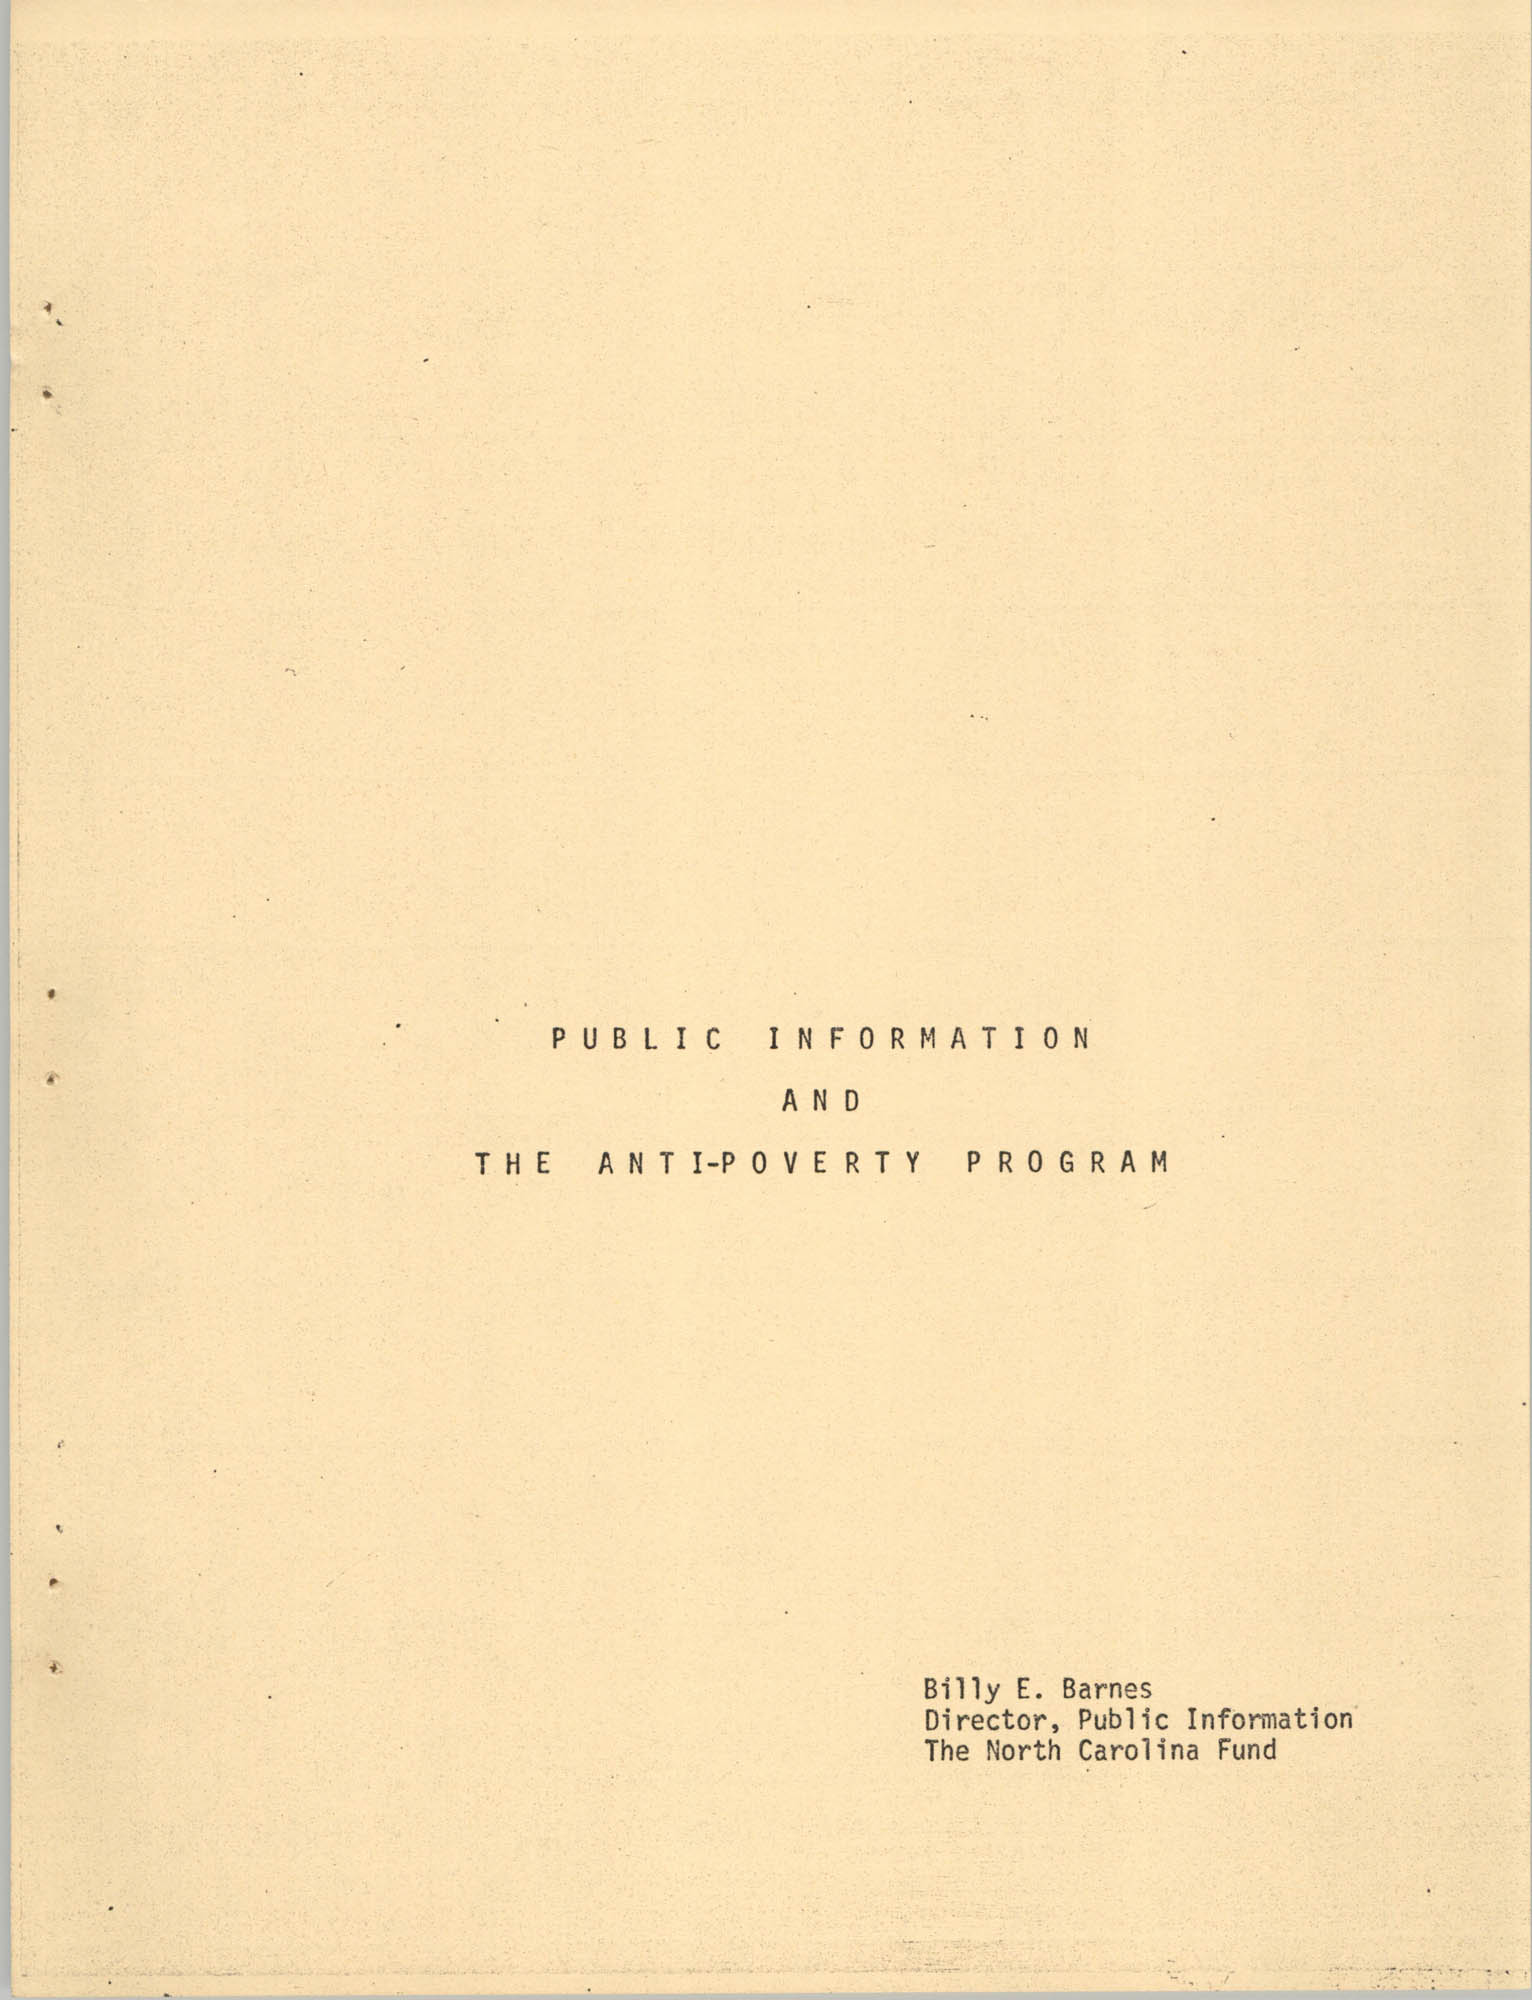 Public Information and the Anti-Poverty Program, Cover Page